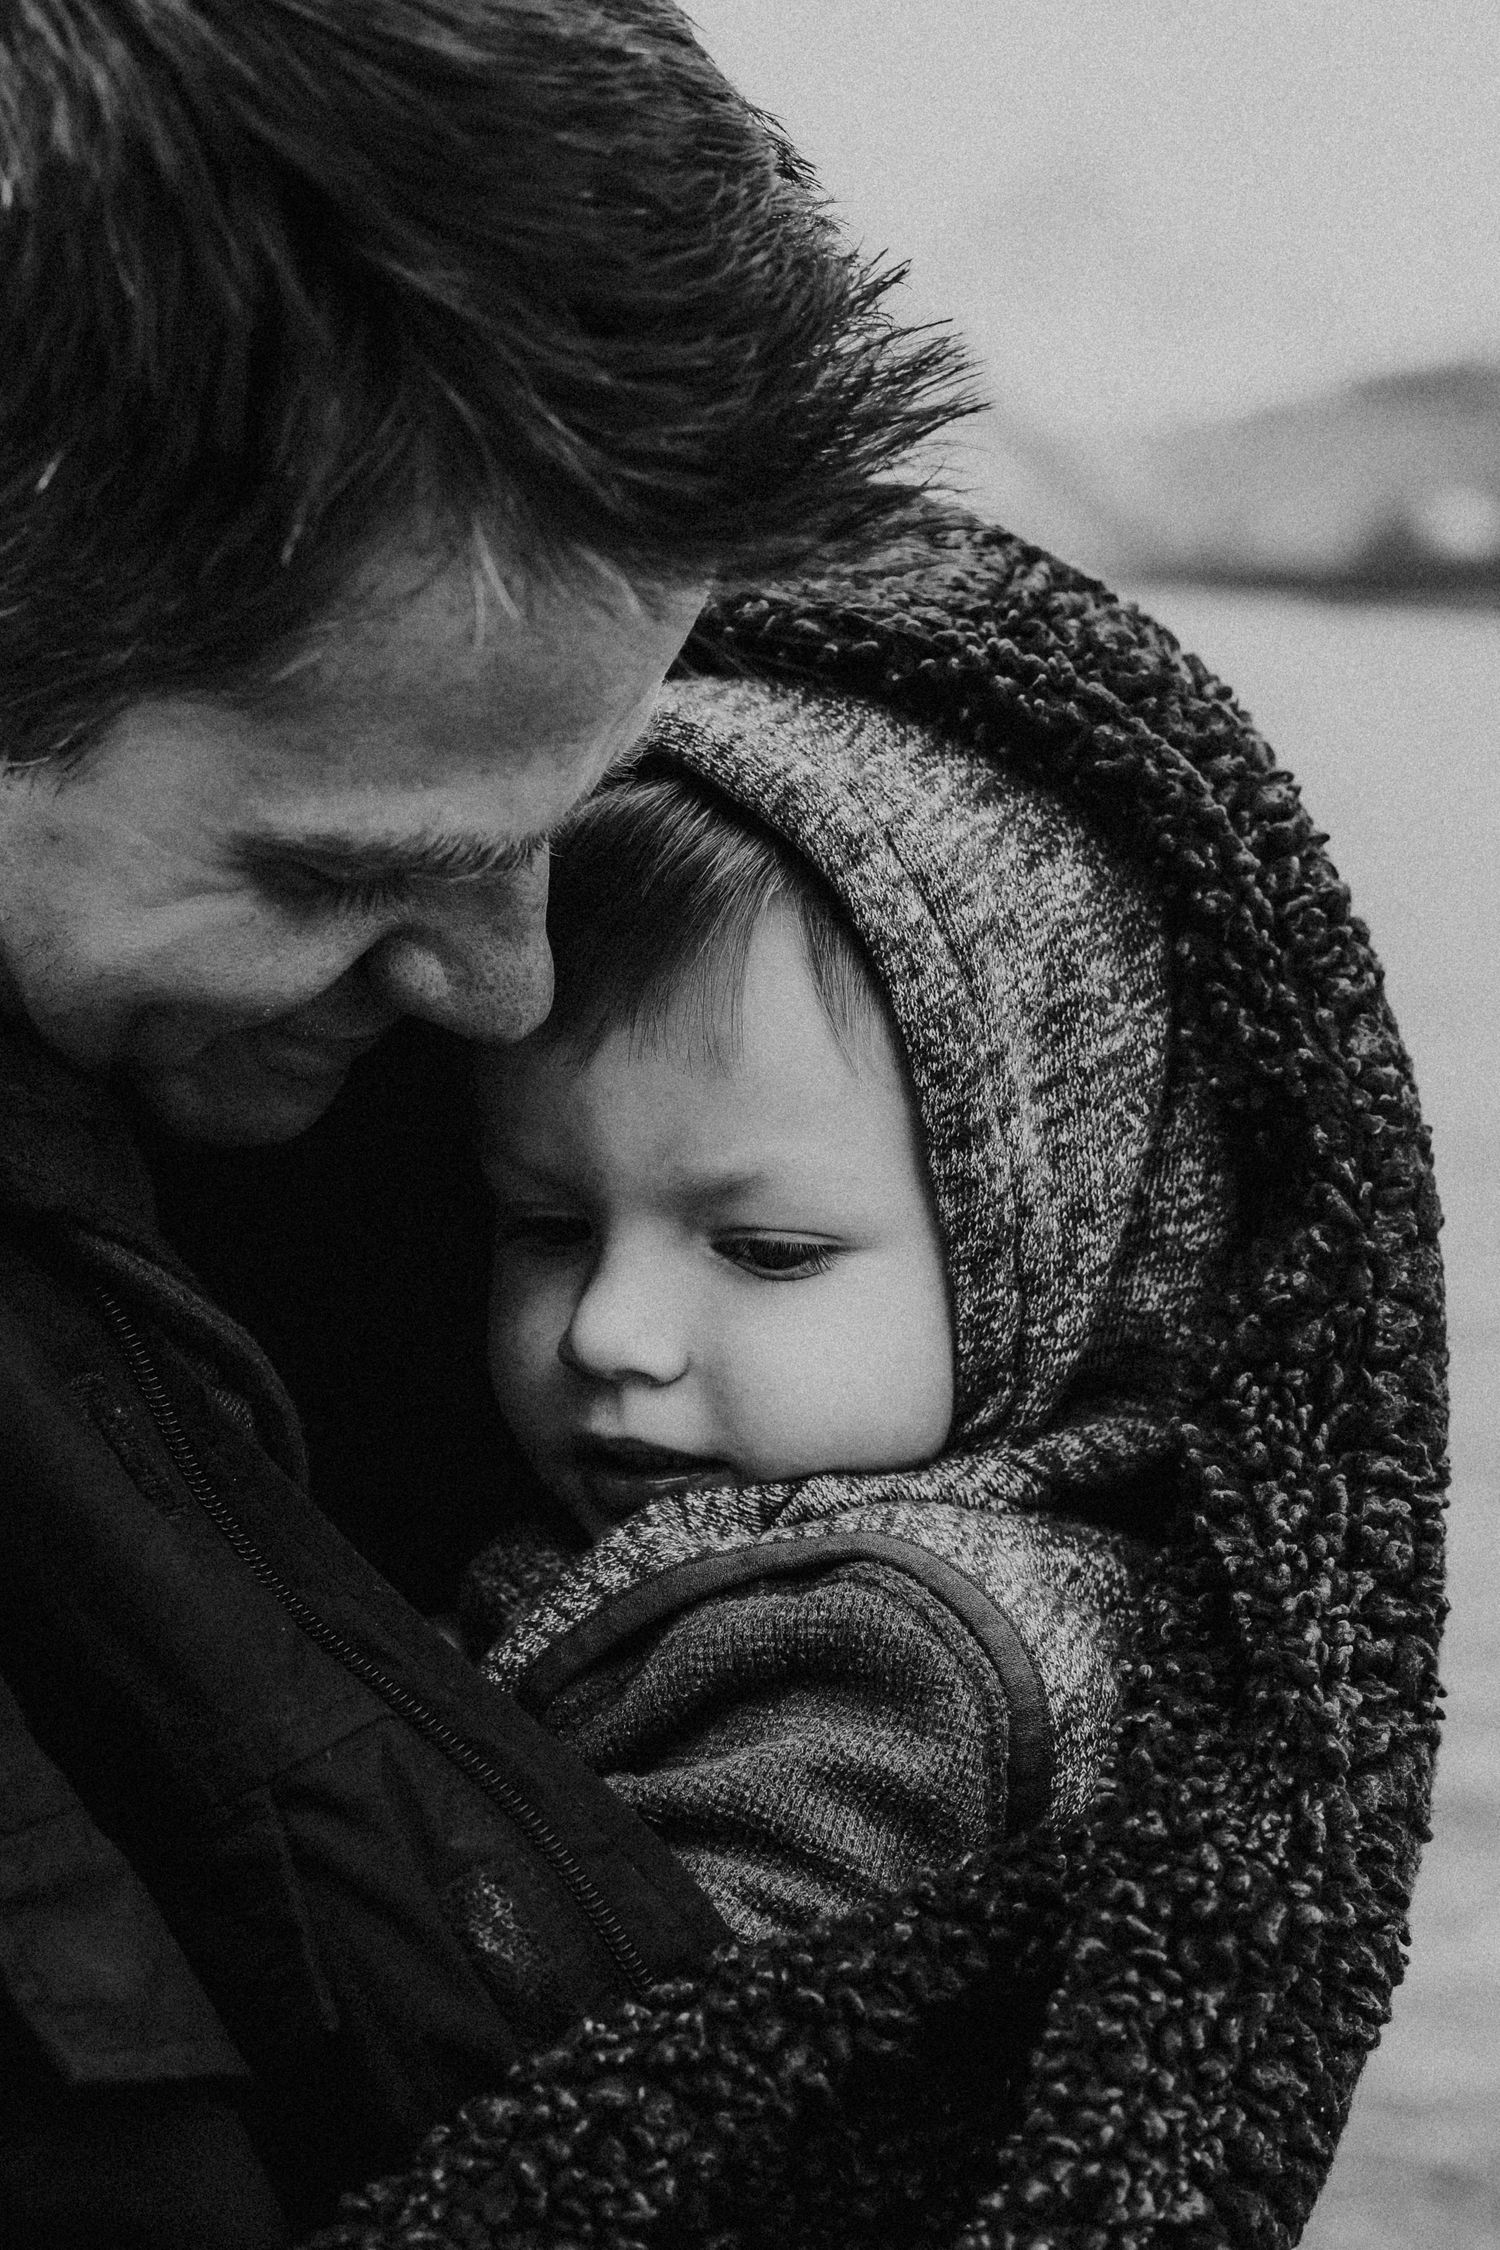 dad holds son in blanket to keep him warm